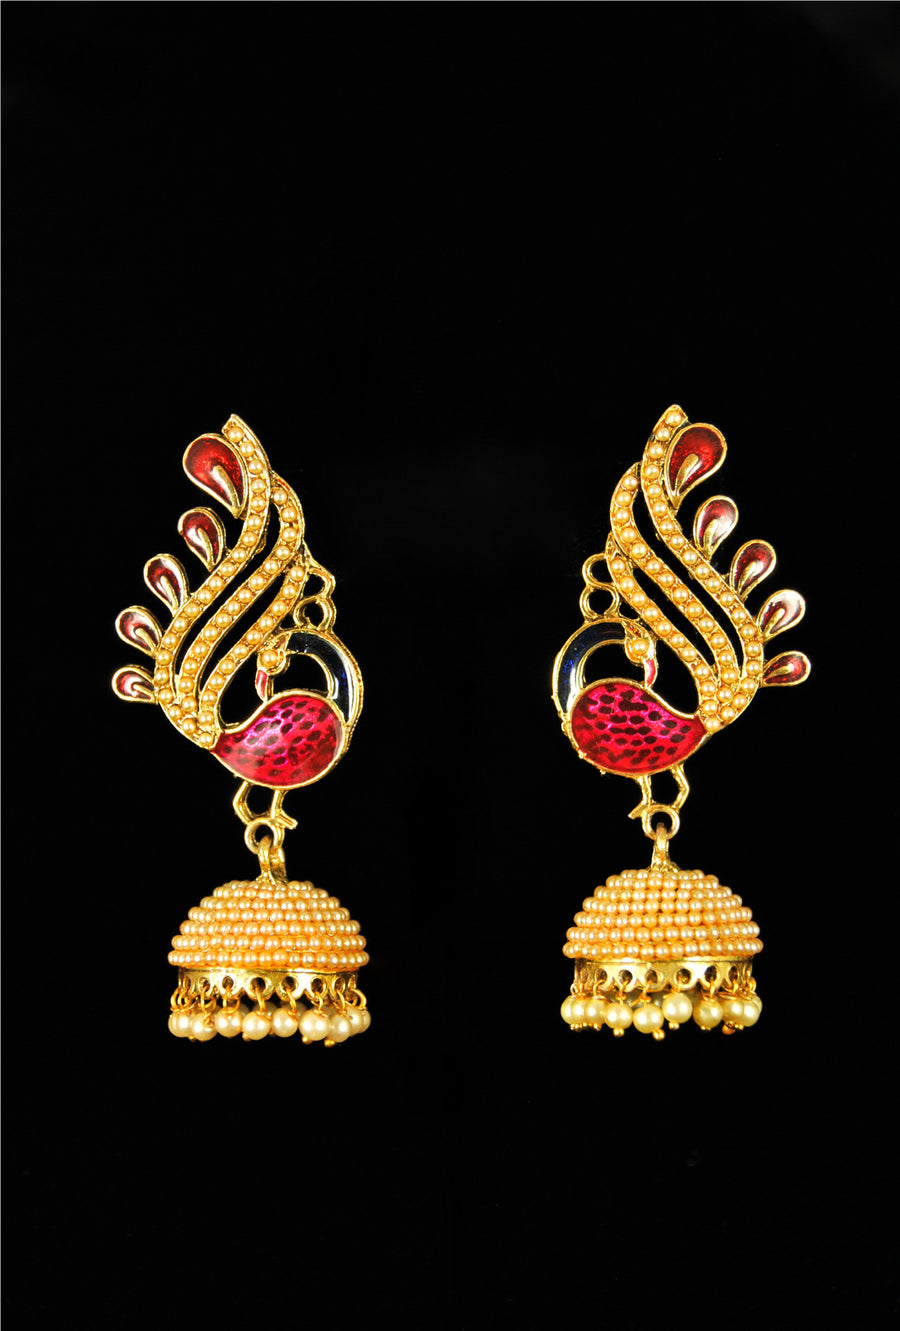 Antique peacock jhumki earrings with pearls - Desi Royale